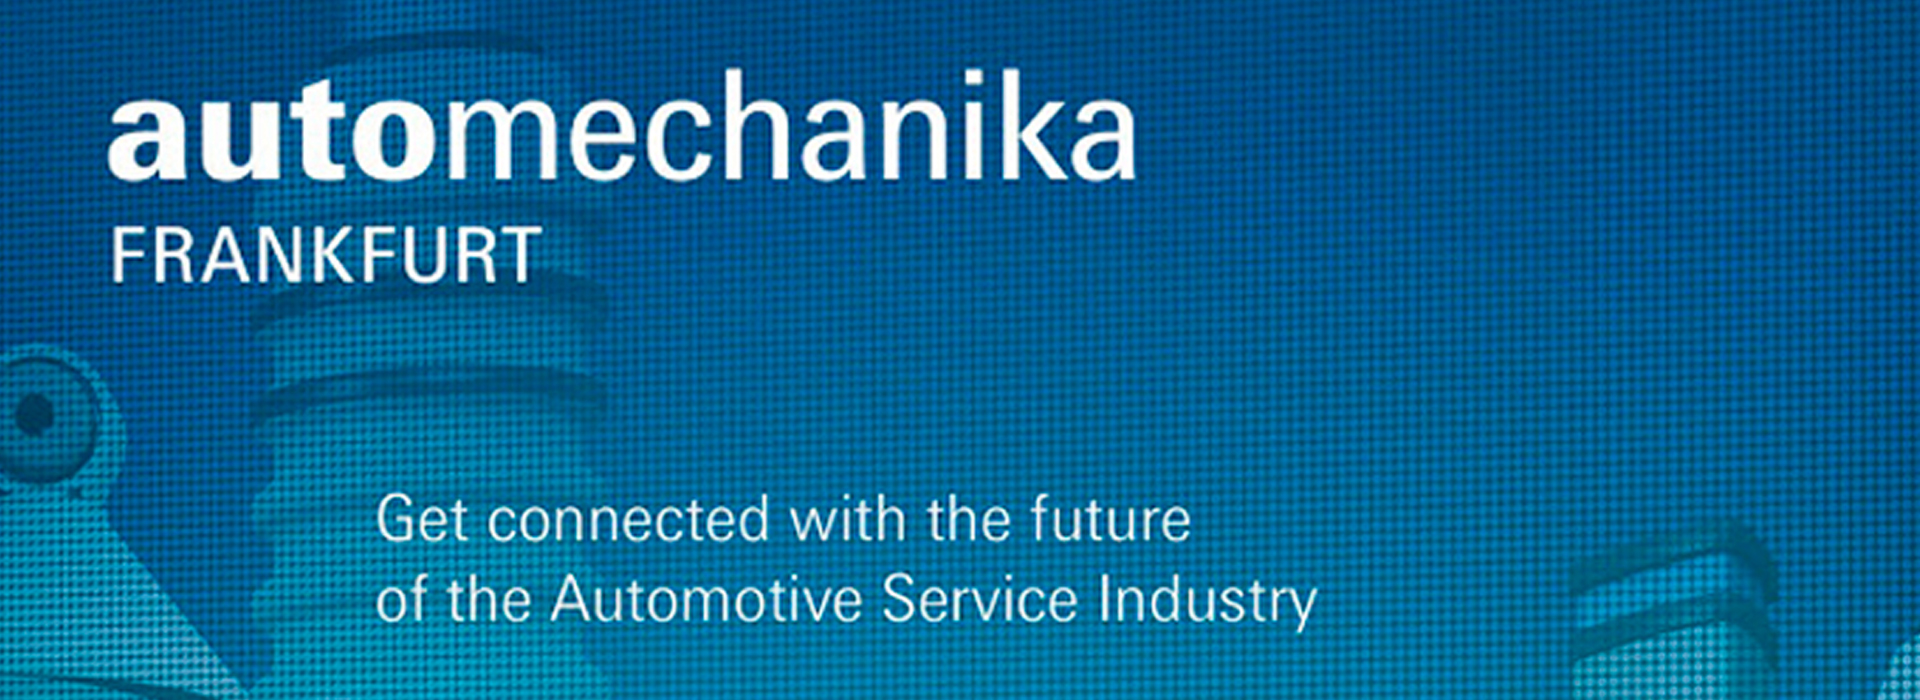 Automechanika 2016 – Invito